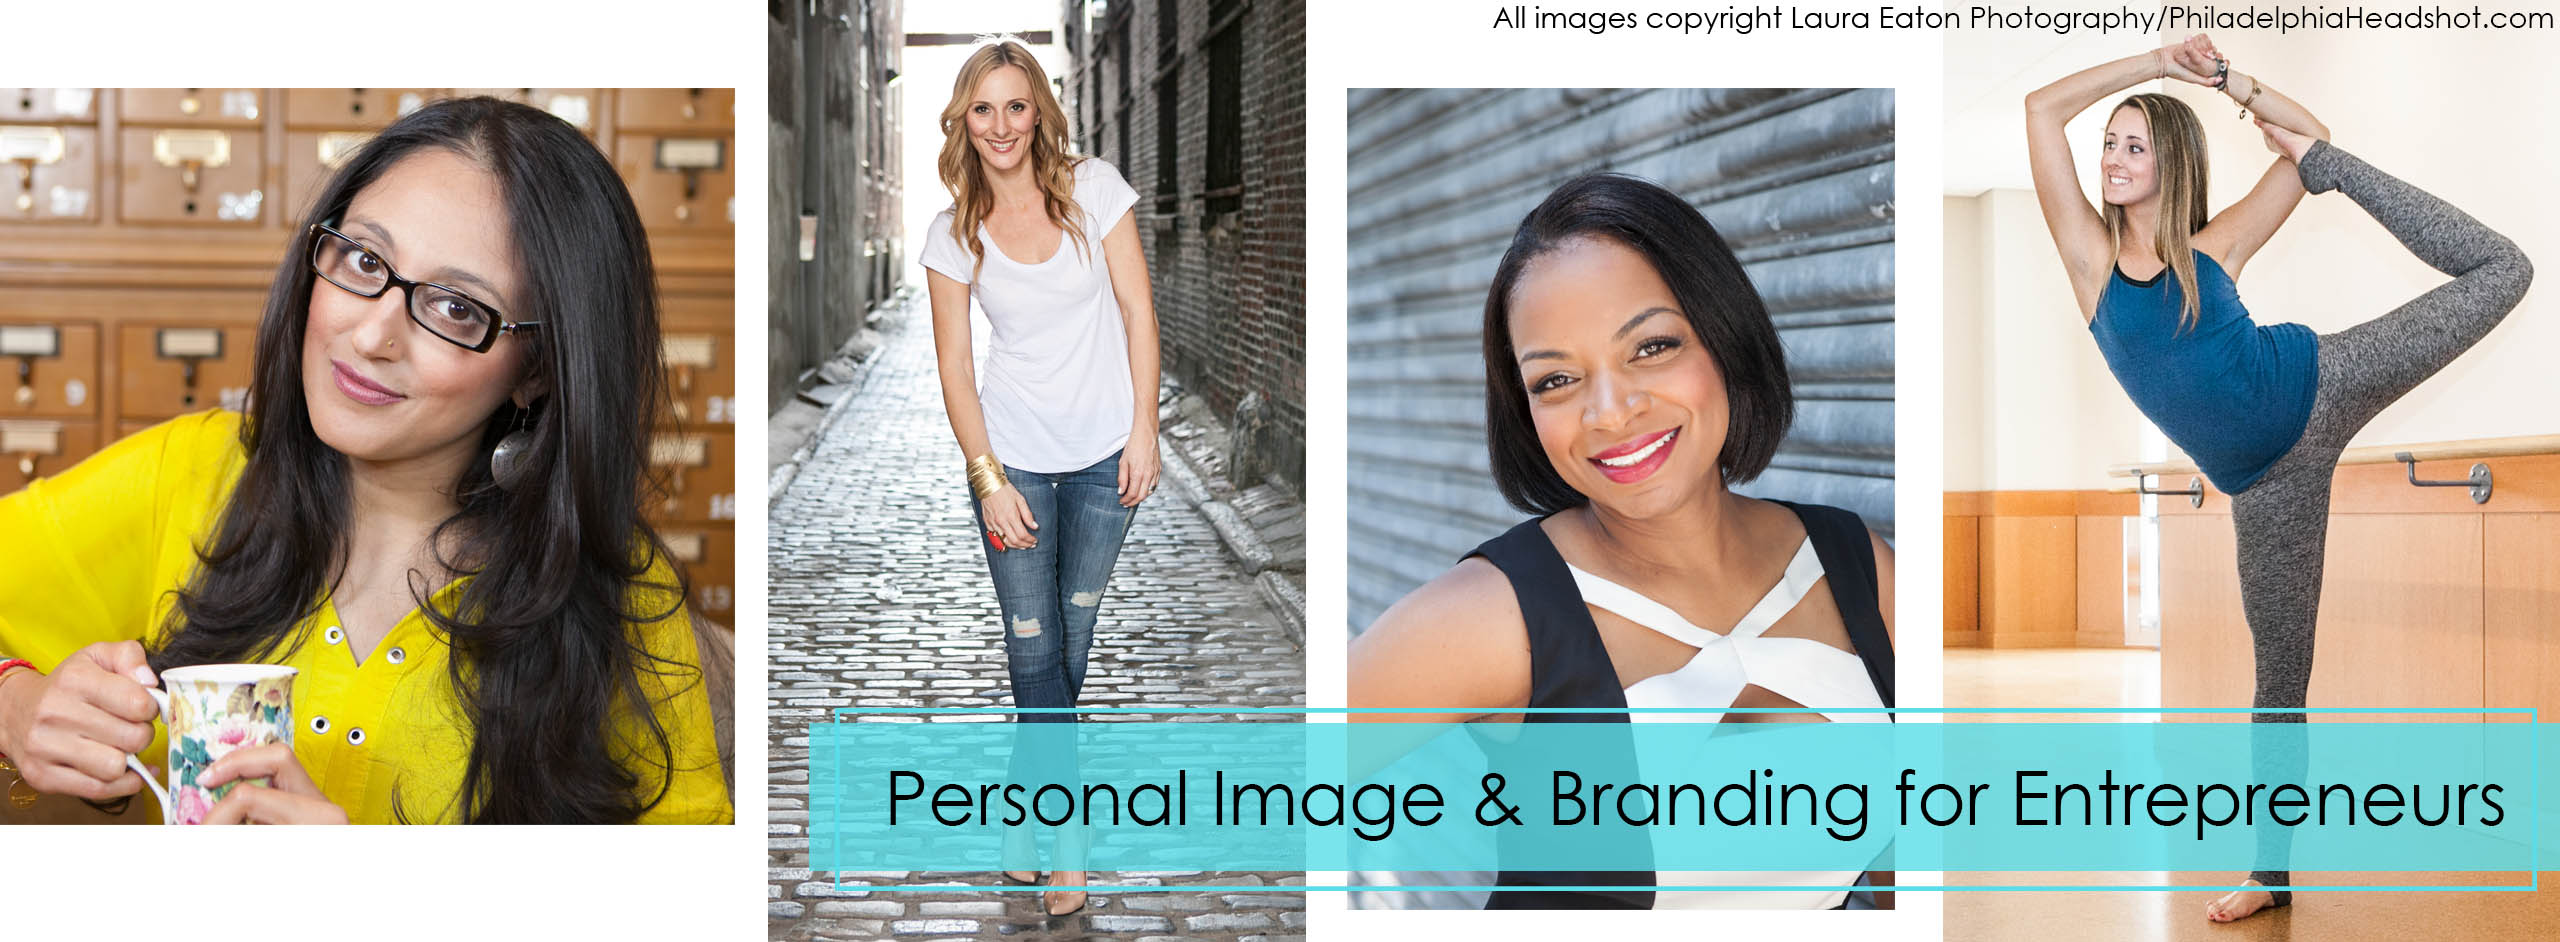 philadelphia headshot photography by Laura Eaton for branding and marketing images